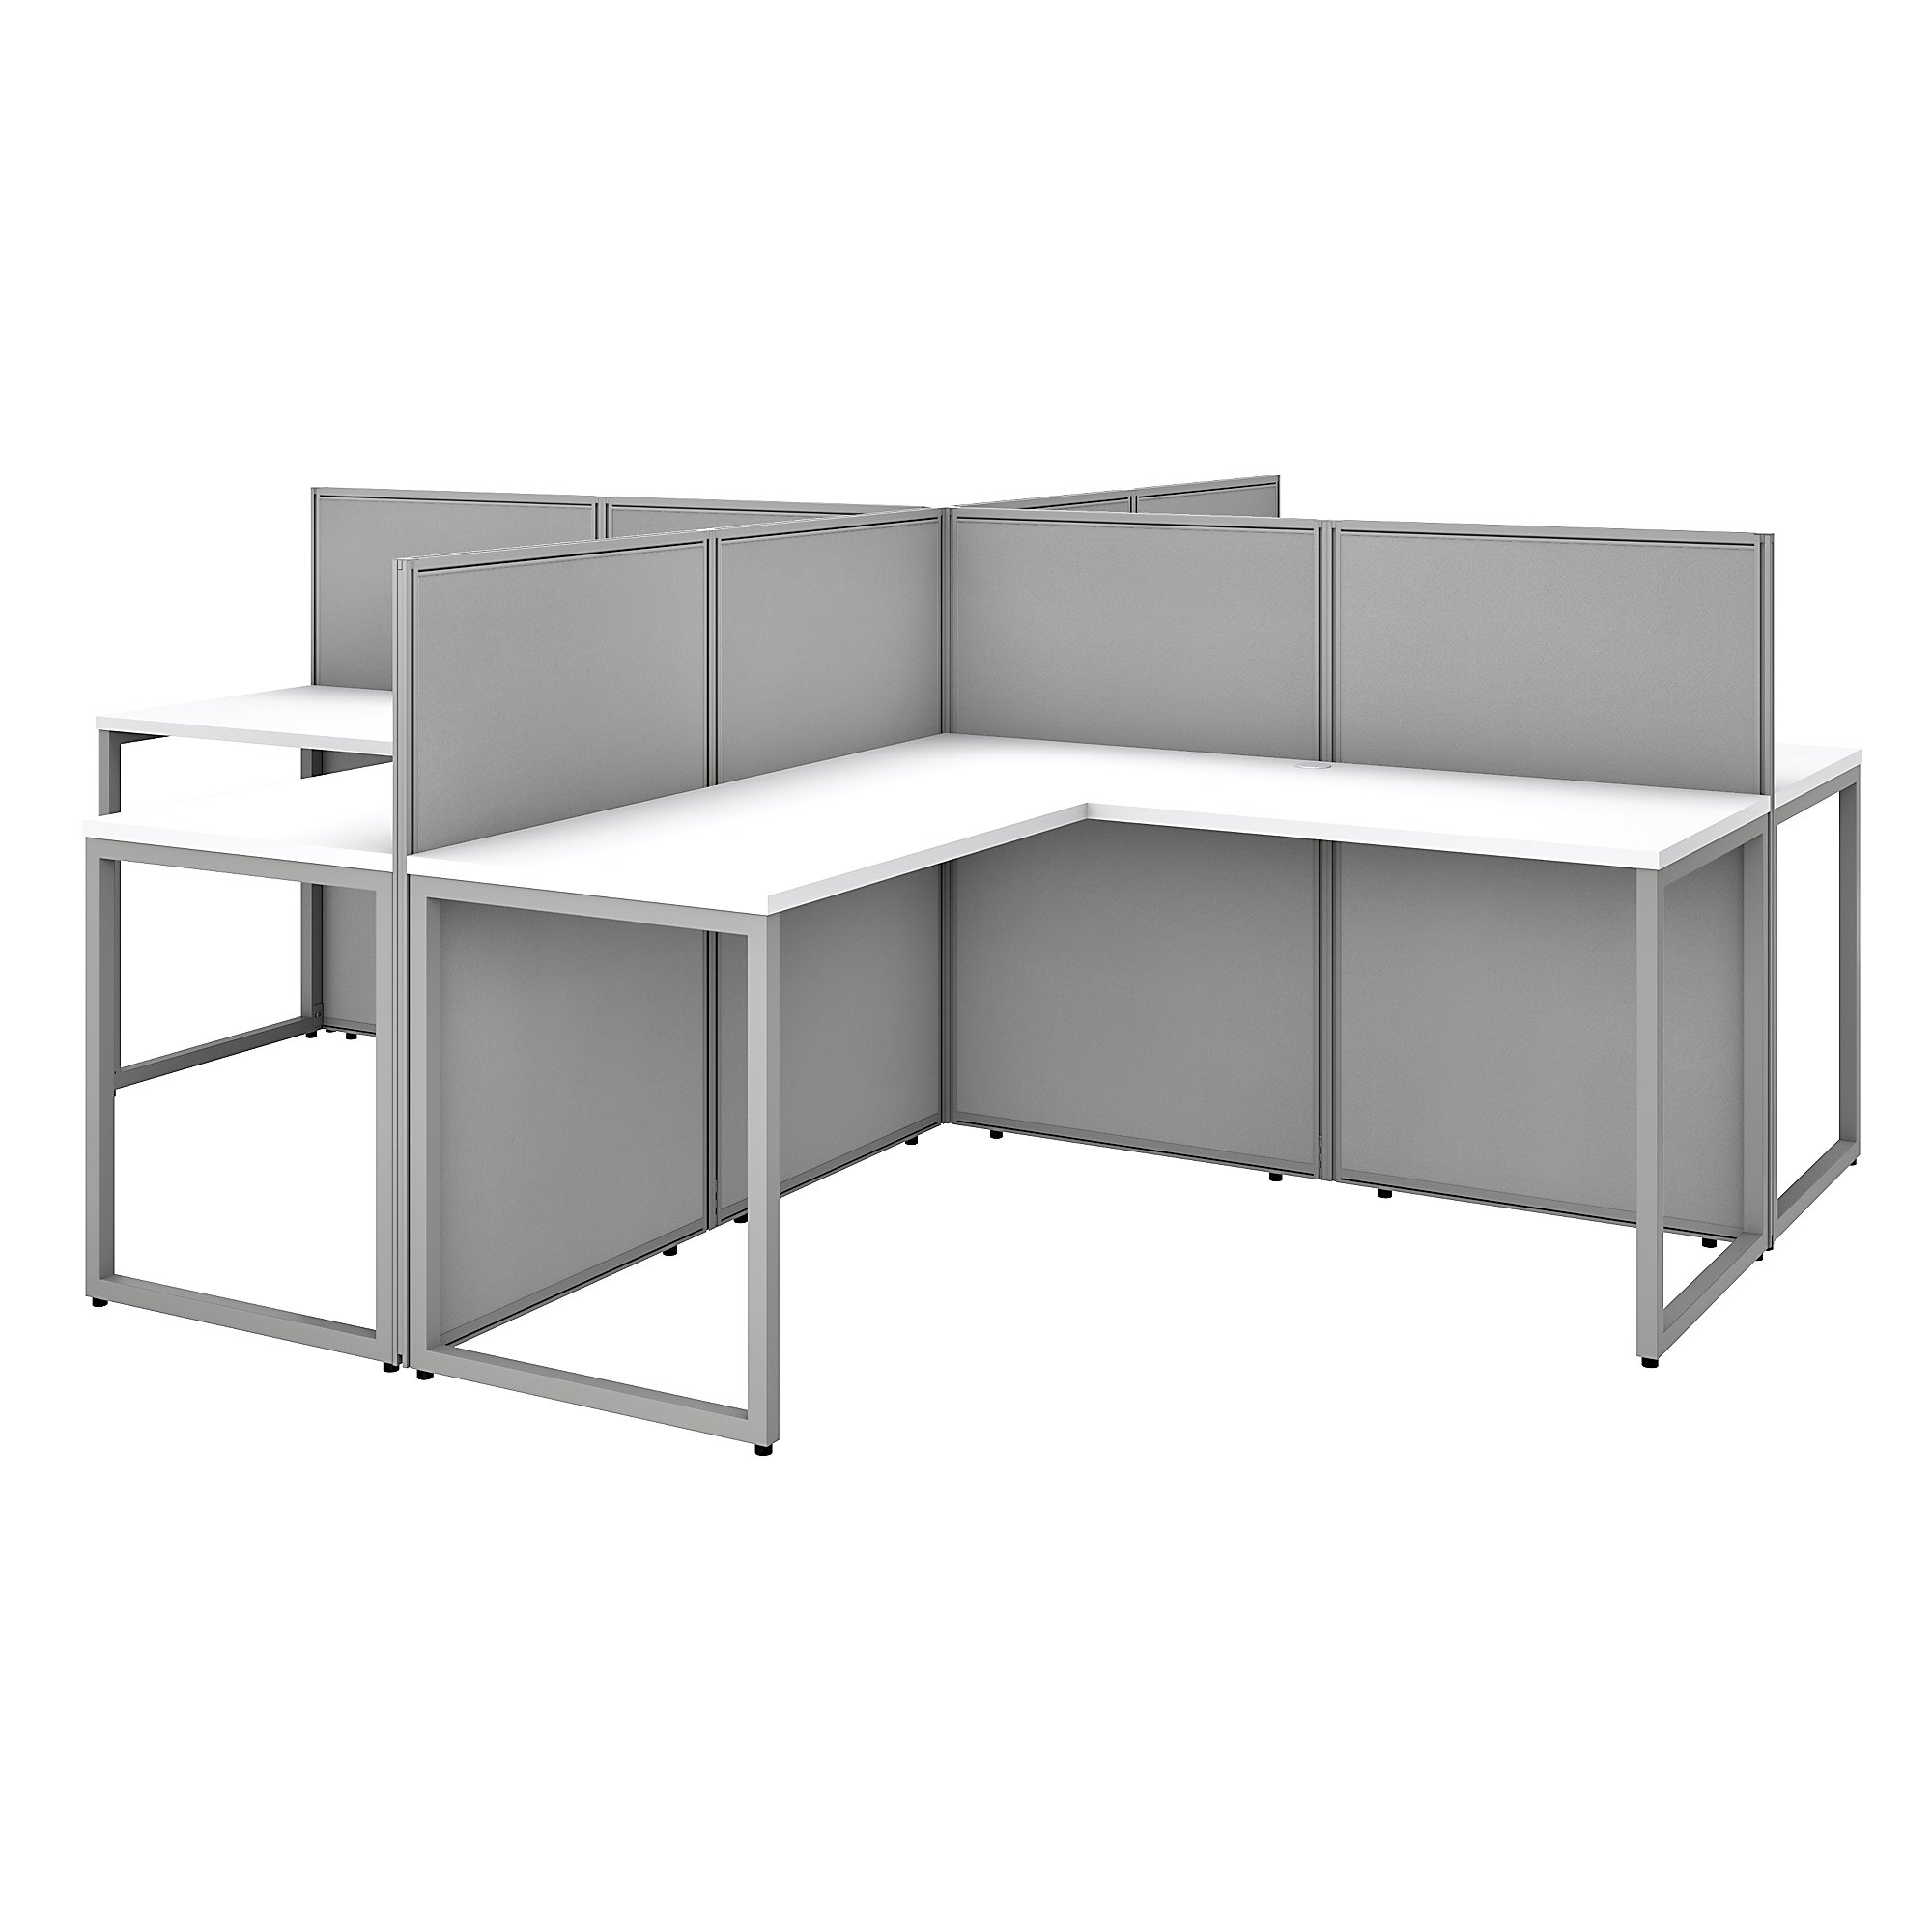 4 person cubicle configuration by bush business furniture